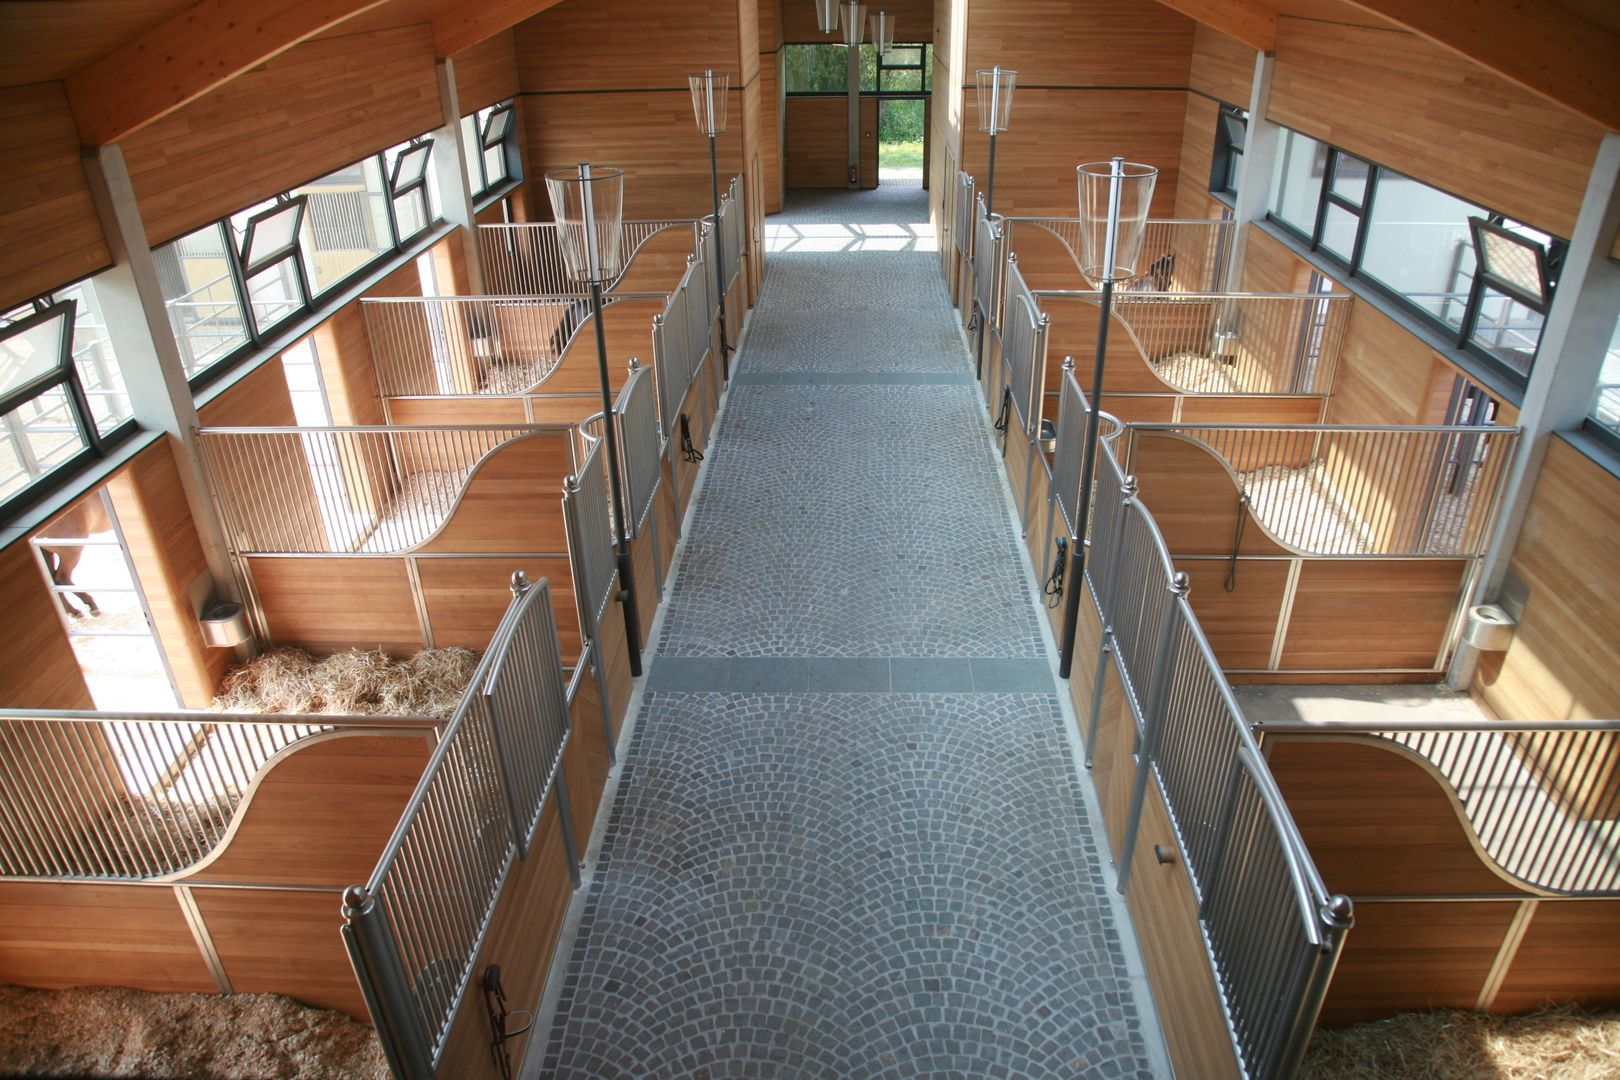 Stables in one of the horse barns at Hofgut Rosenau, Germany